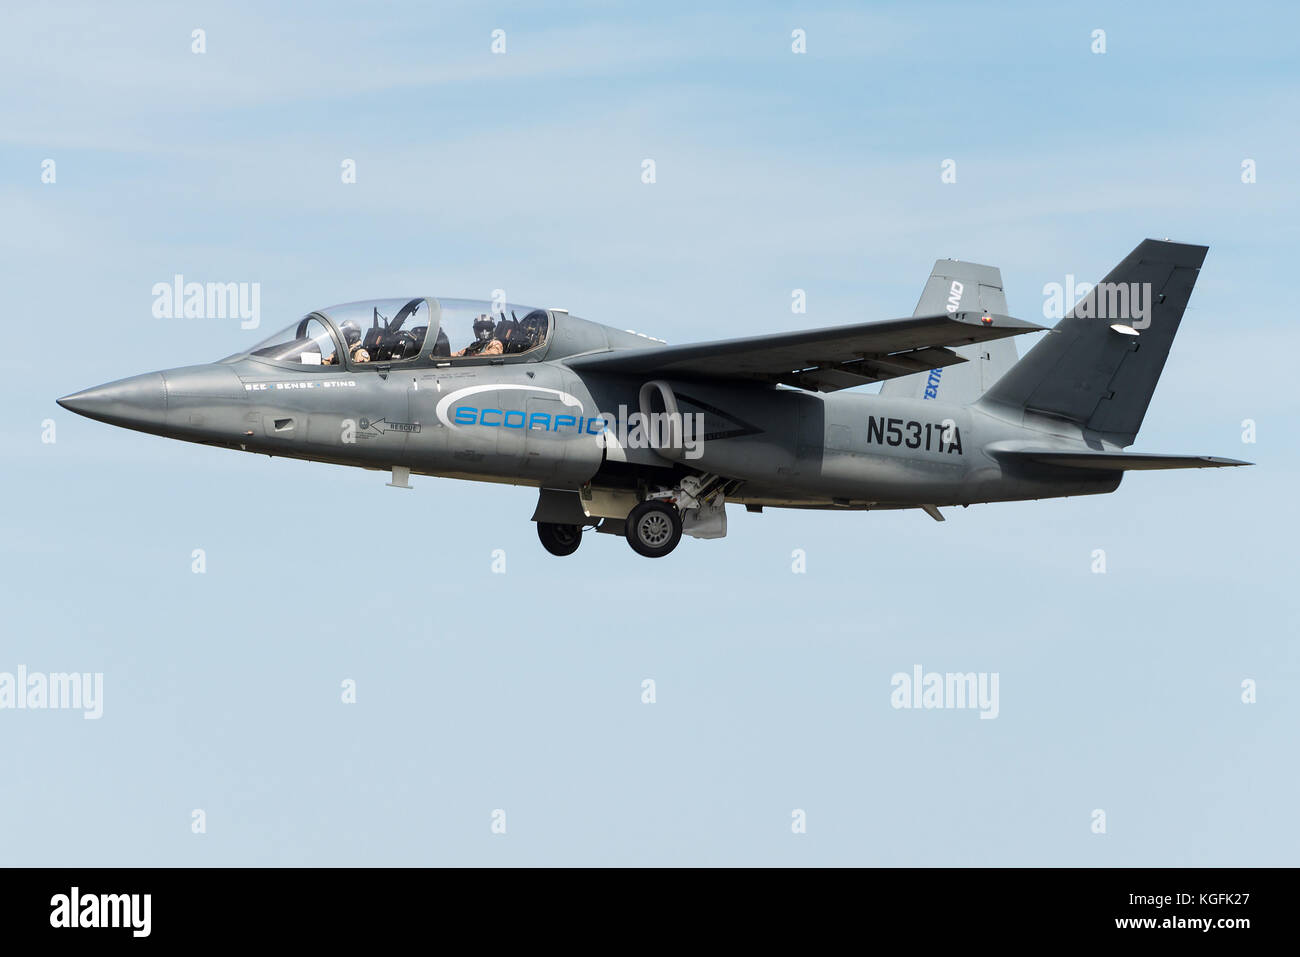 The Textron AirLand Scorpion light attack jet developed by Textron AirLand, a joint venture between Textron and - Stock Image